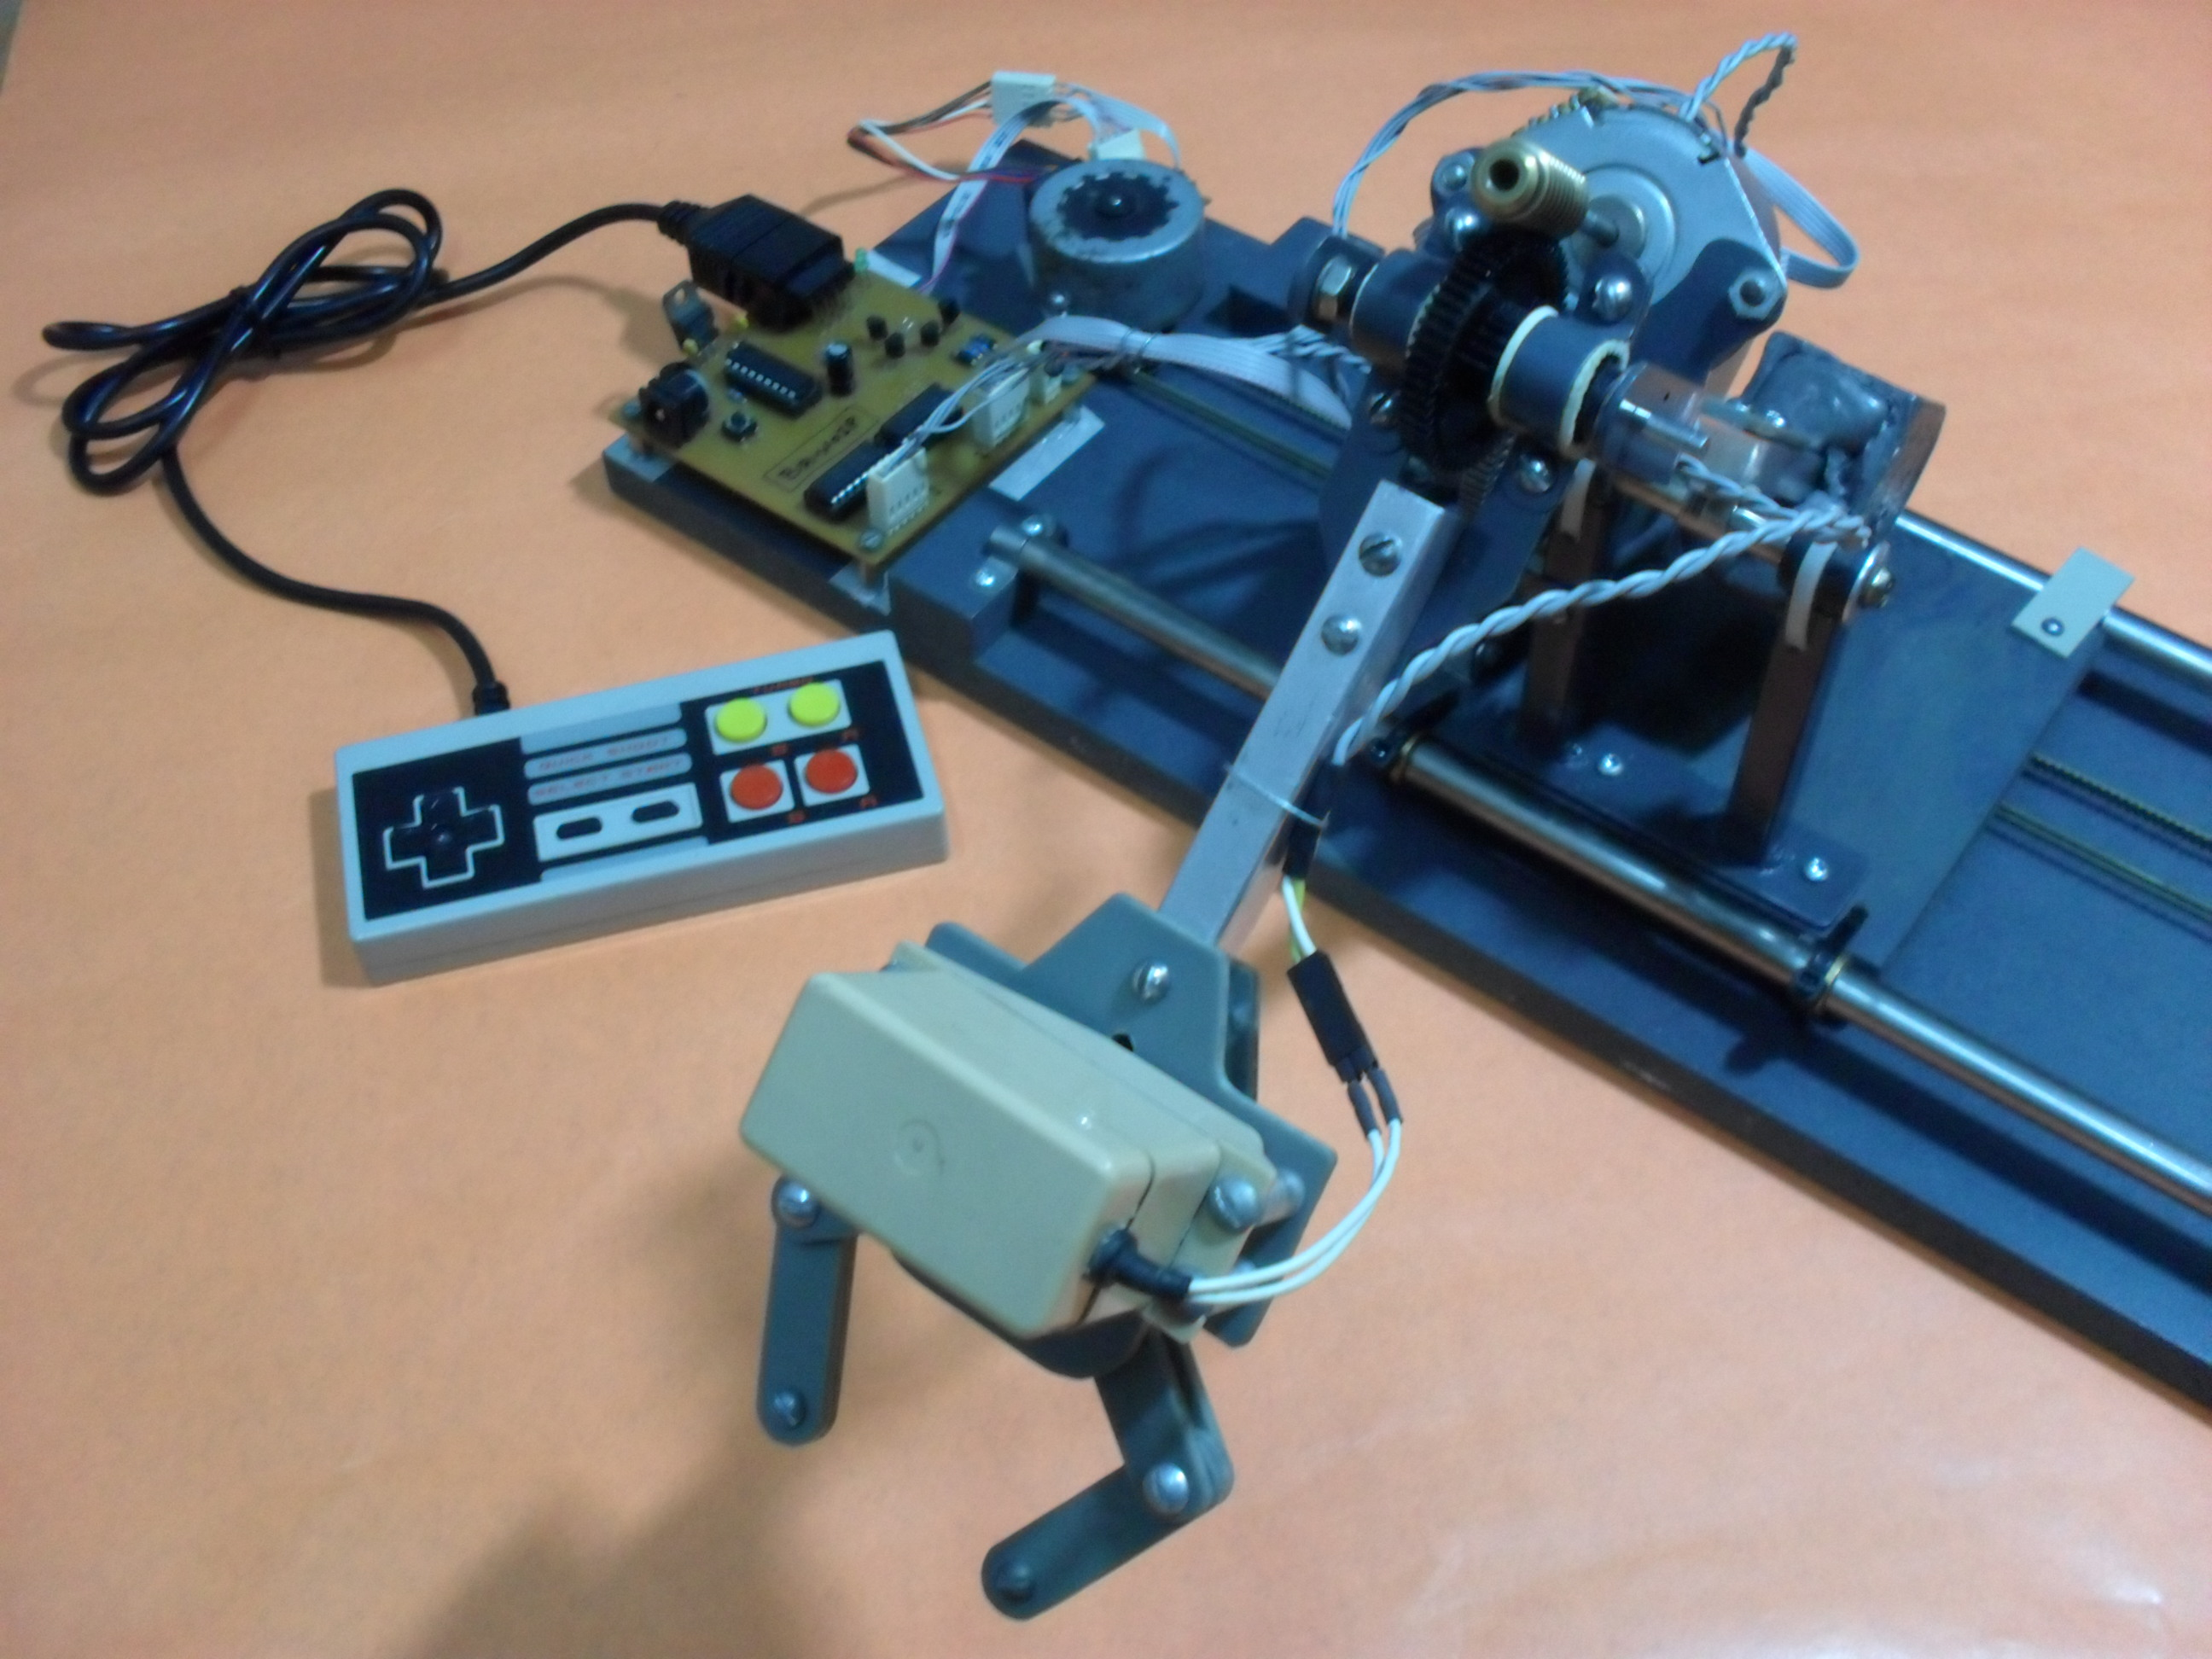 Picture of Robotic Arm Controlled by NES Gamepad